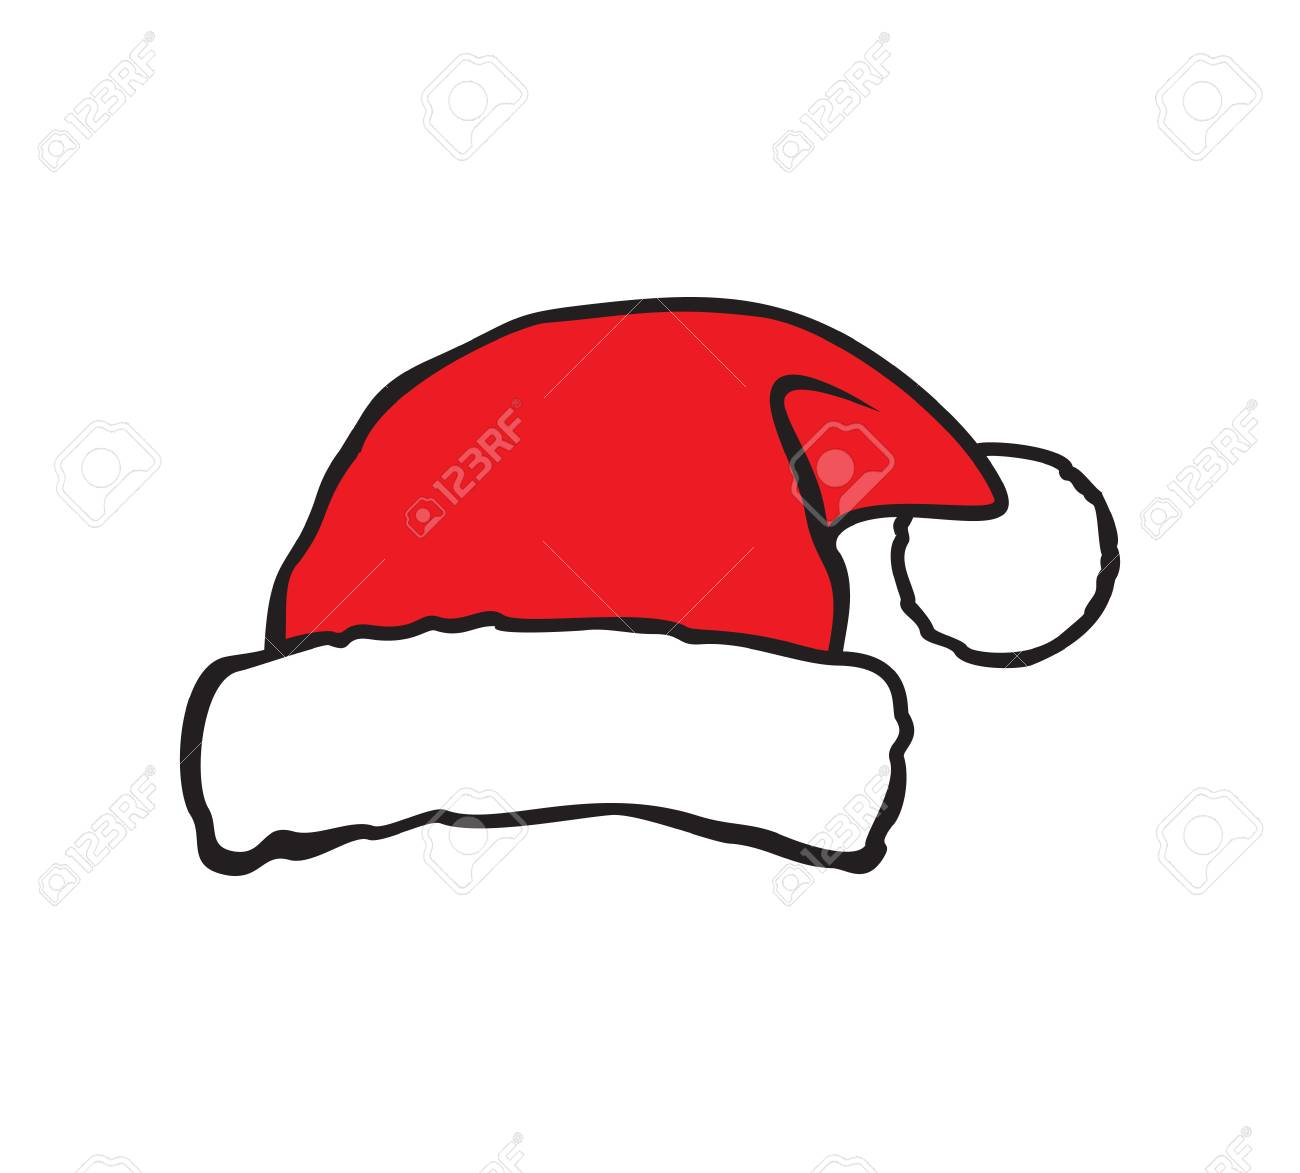 Santa Hat Vector Illustration Royalty Free Cliparts, Vectors, And ...